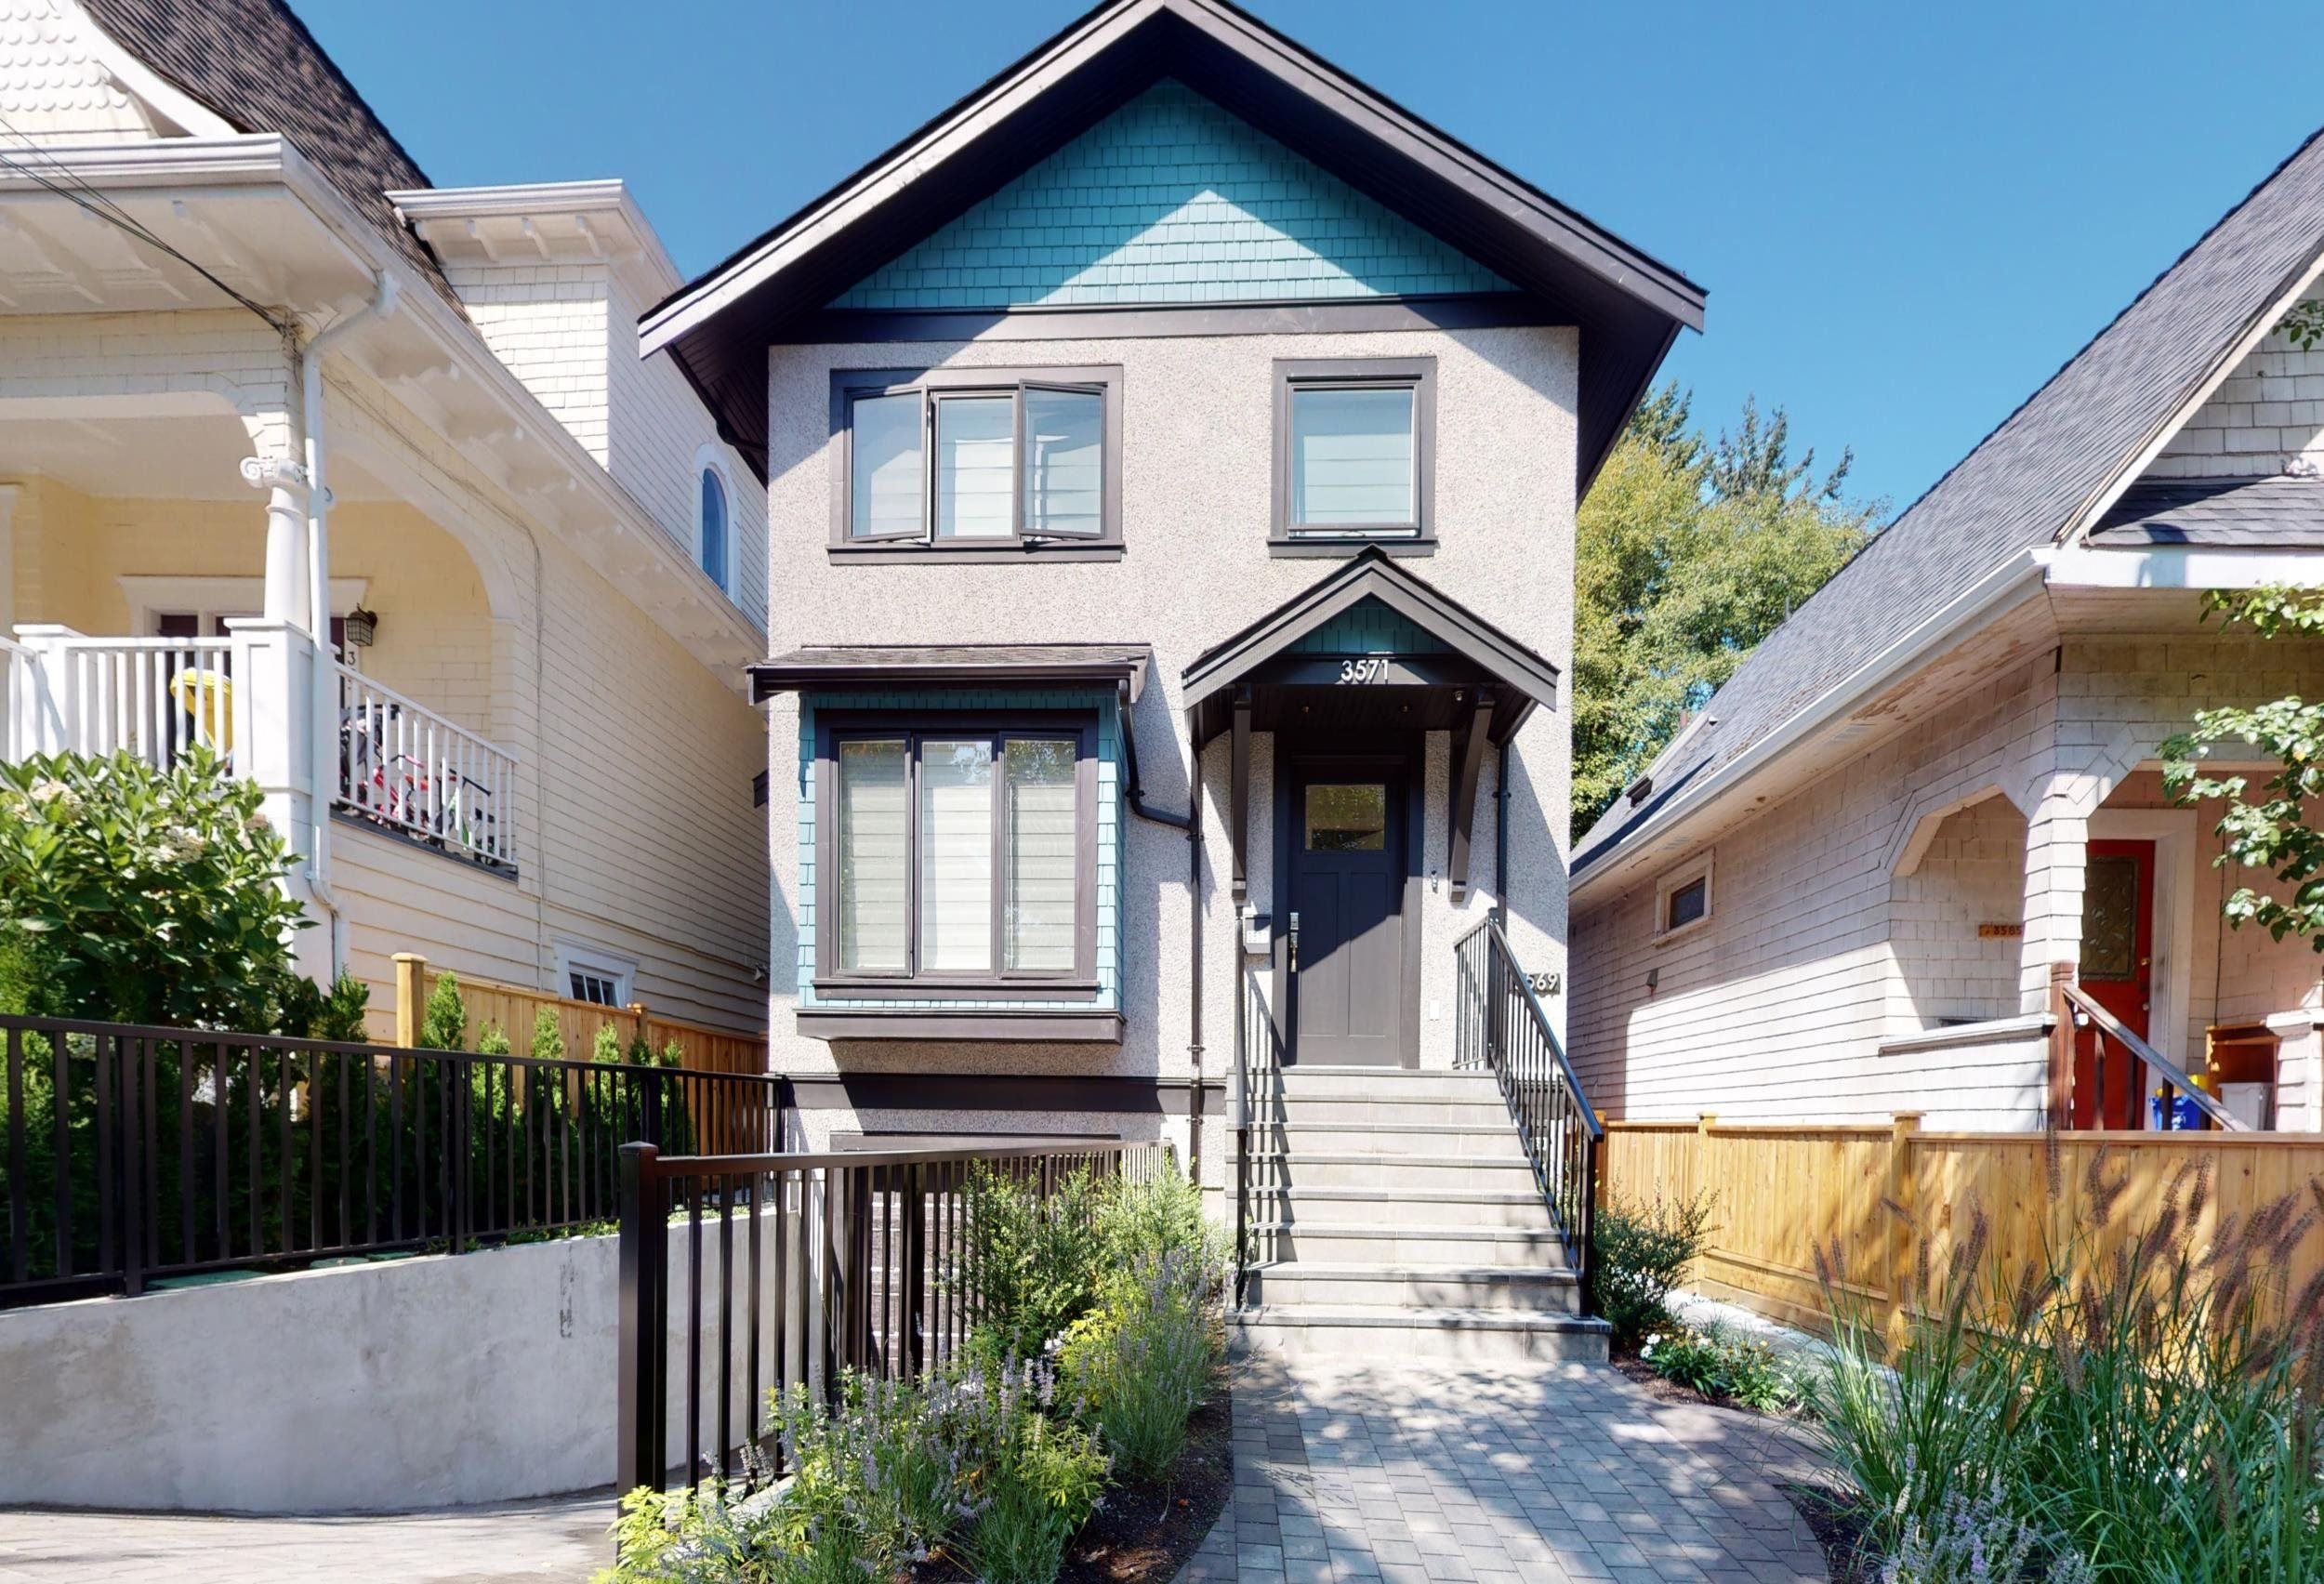 Main Photo: 3571 MARSHALL Street in Vancouver: Grandview Woodland House for sale (Vancouver East)  : MLS®# R2615173